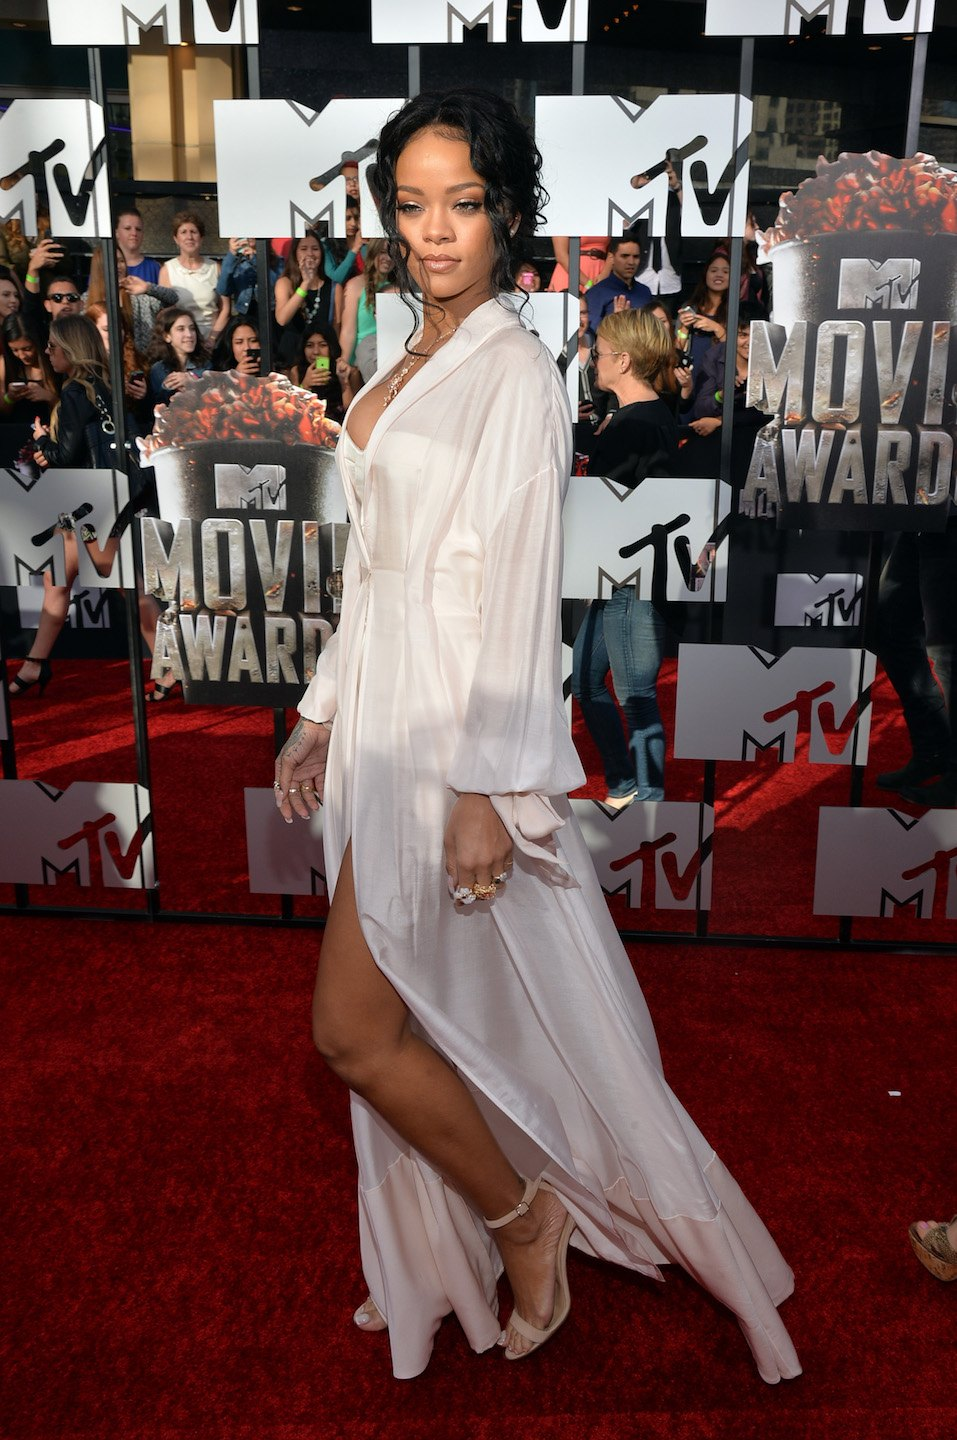 Rihanna attends the 2014 MTV Movie Awards at Nokia Theatre L.A.